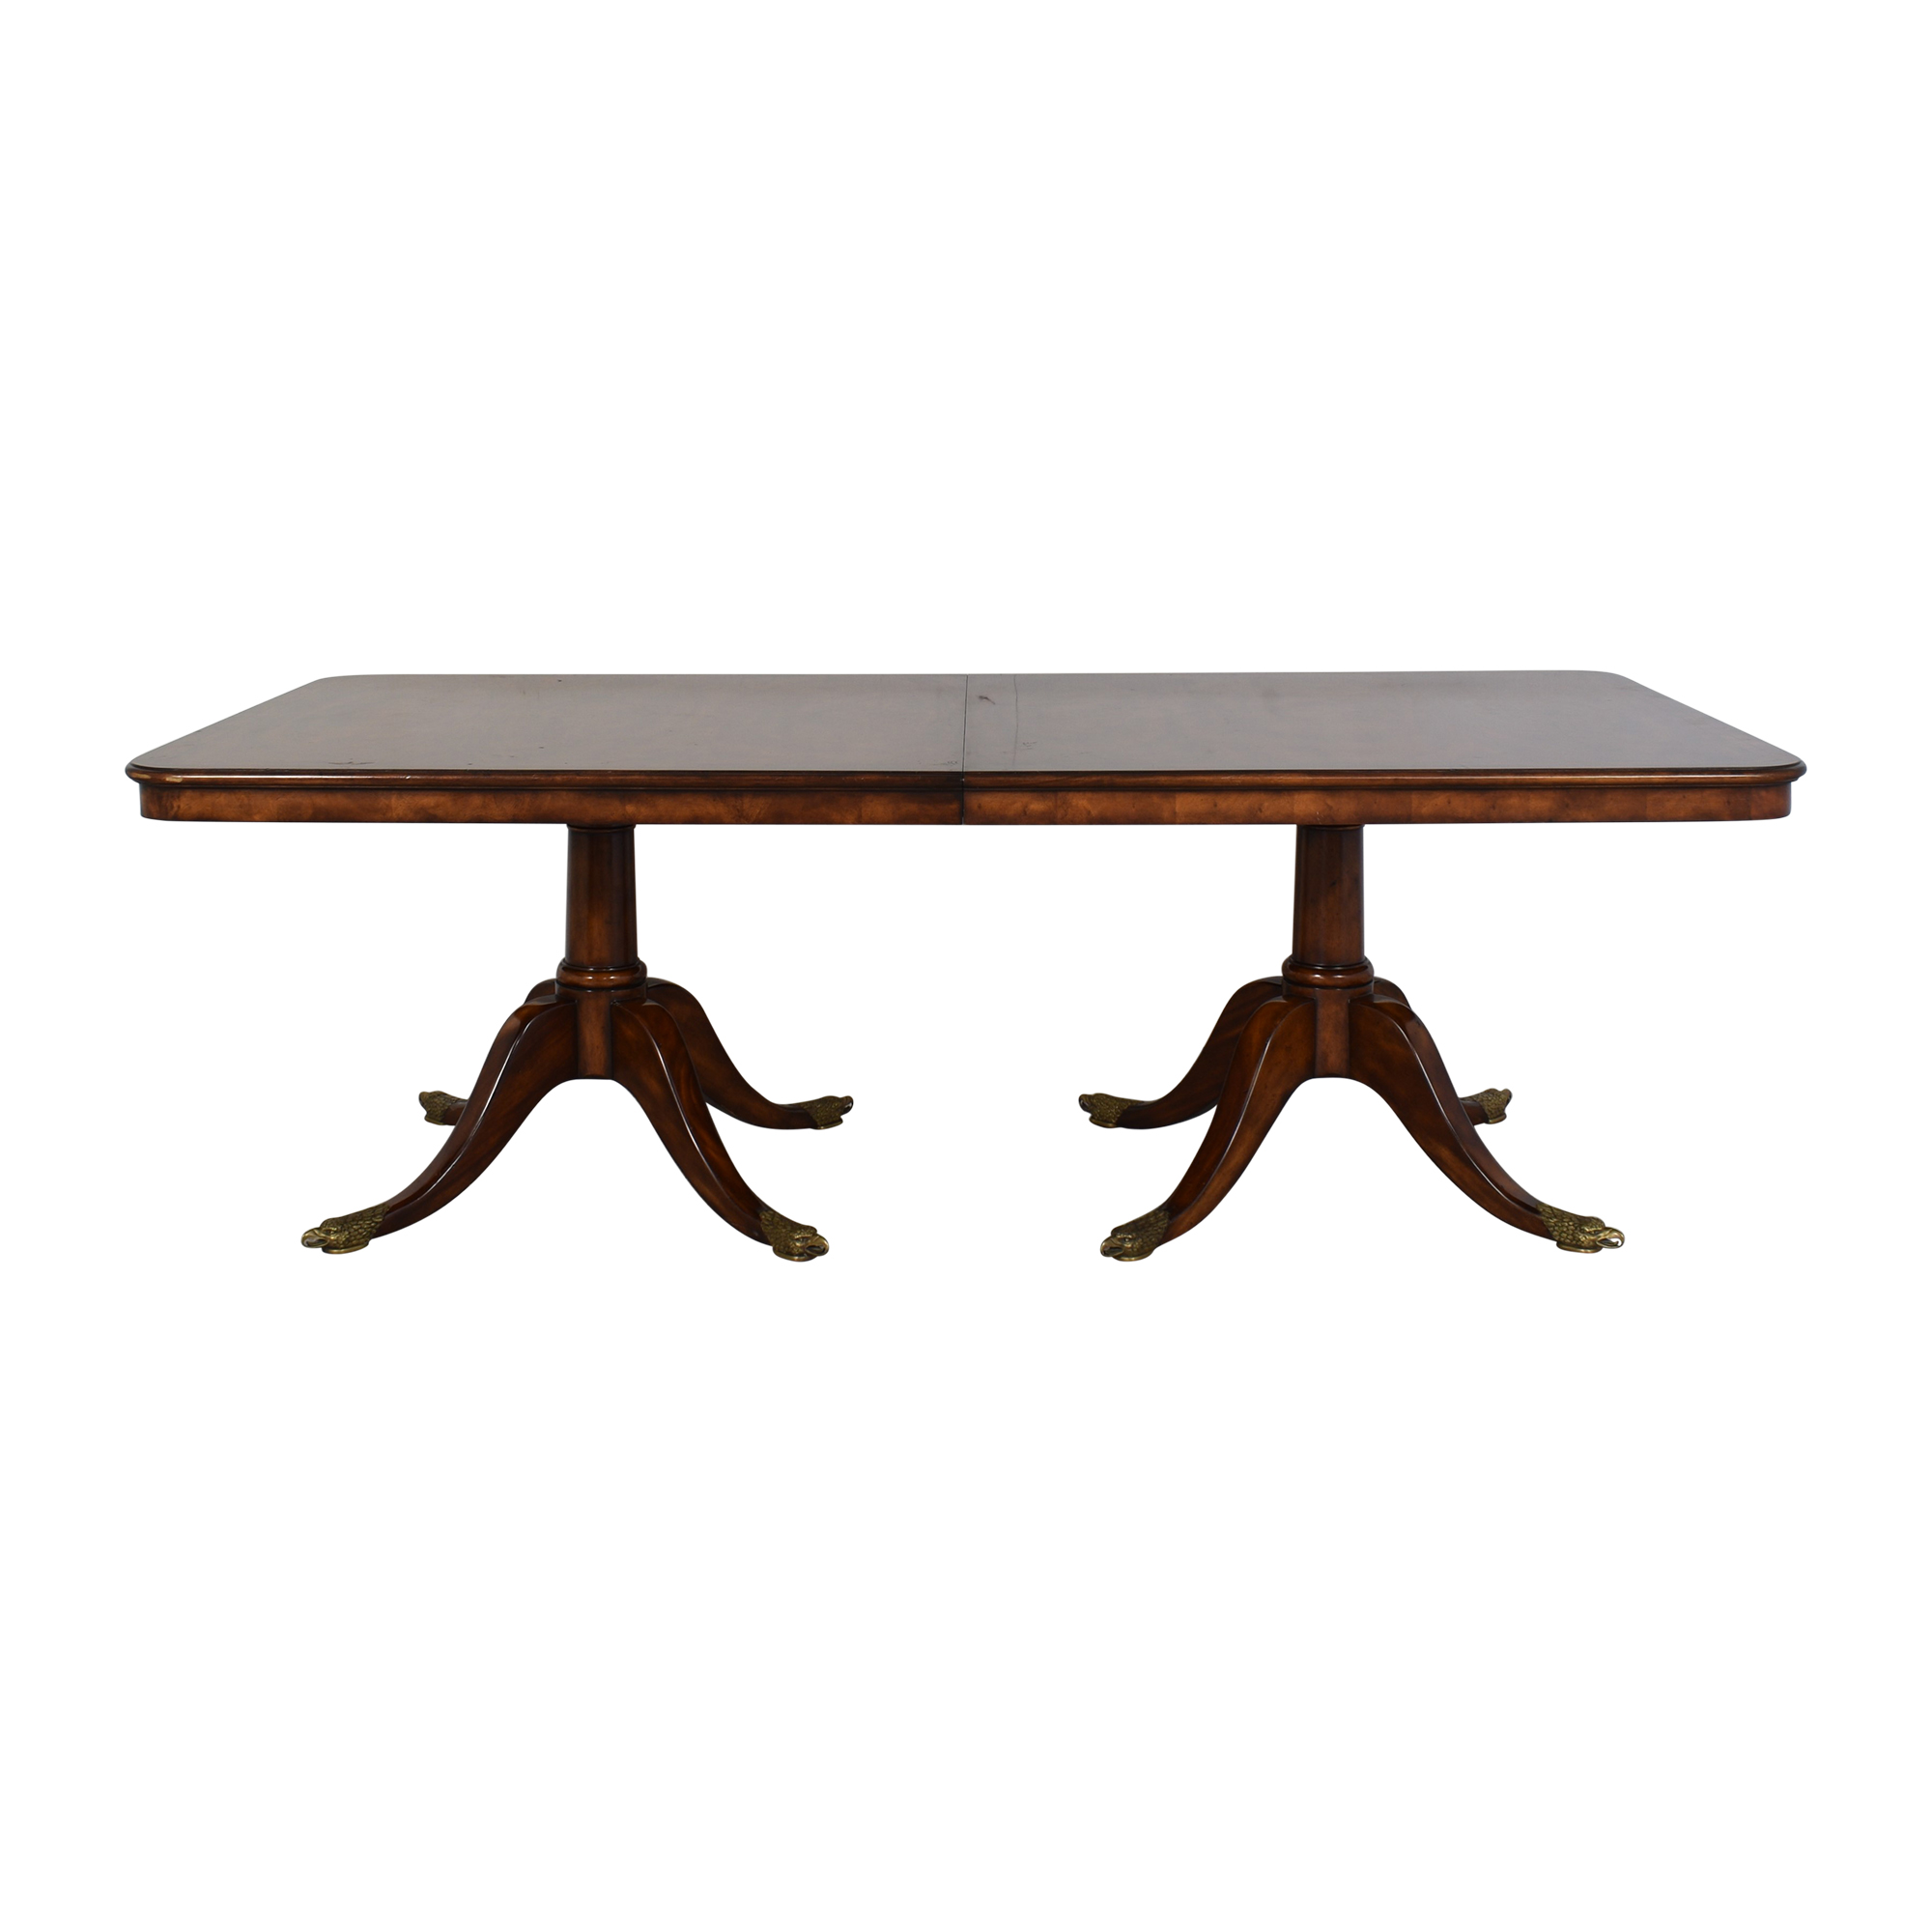 Baker Furniture Baker Furniture Mahogany Wood Extension Dining Table used